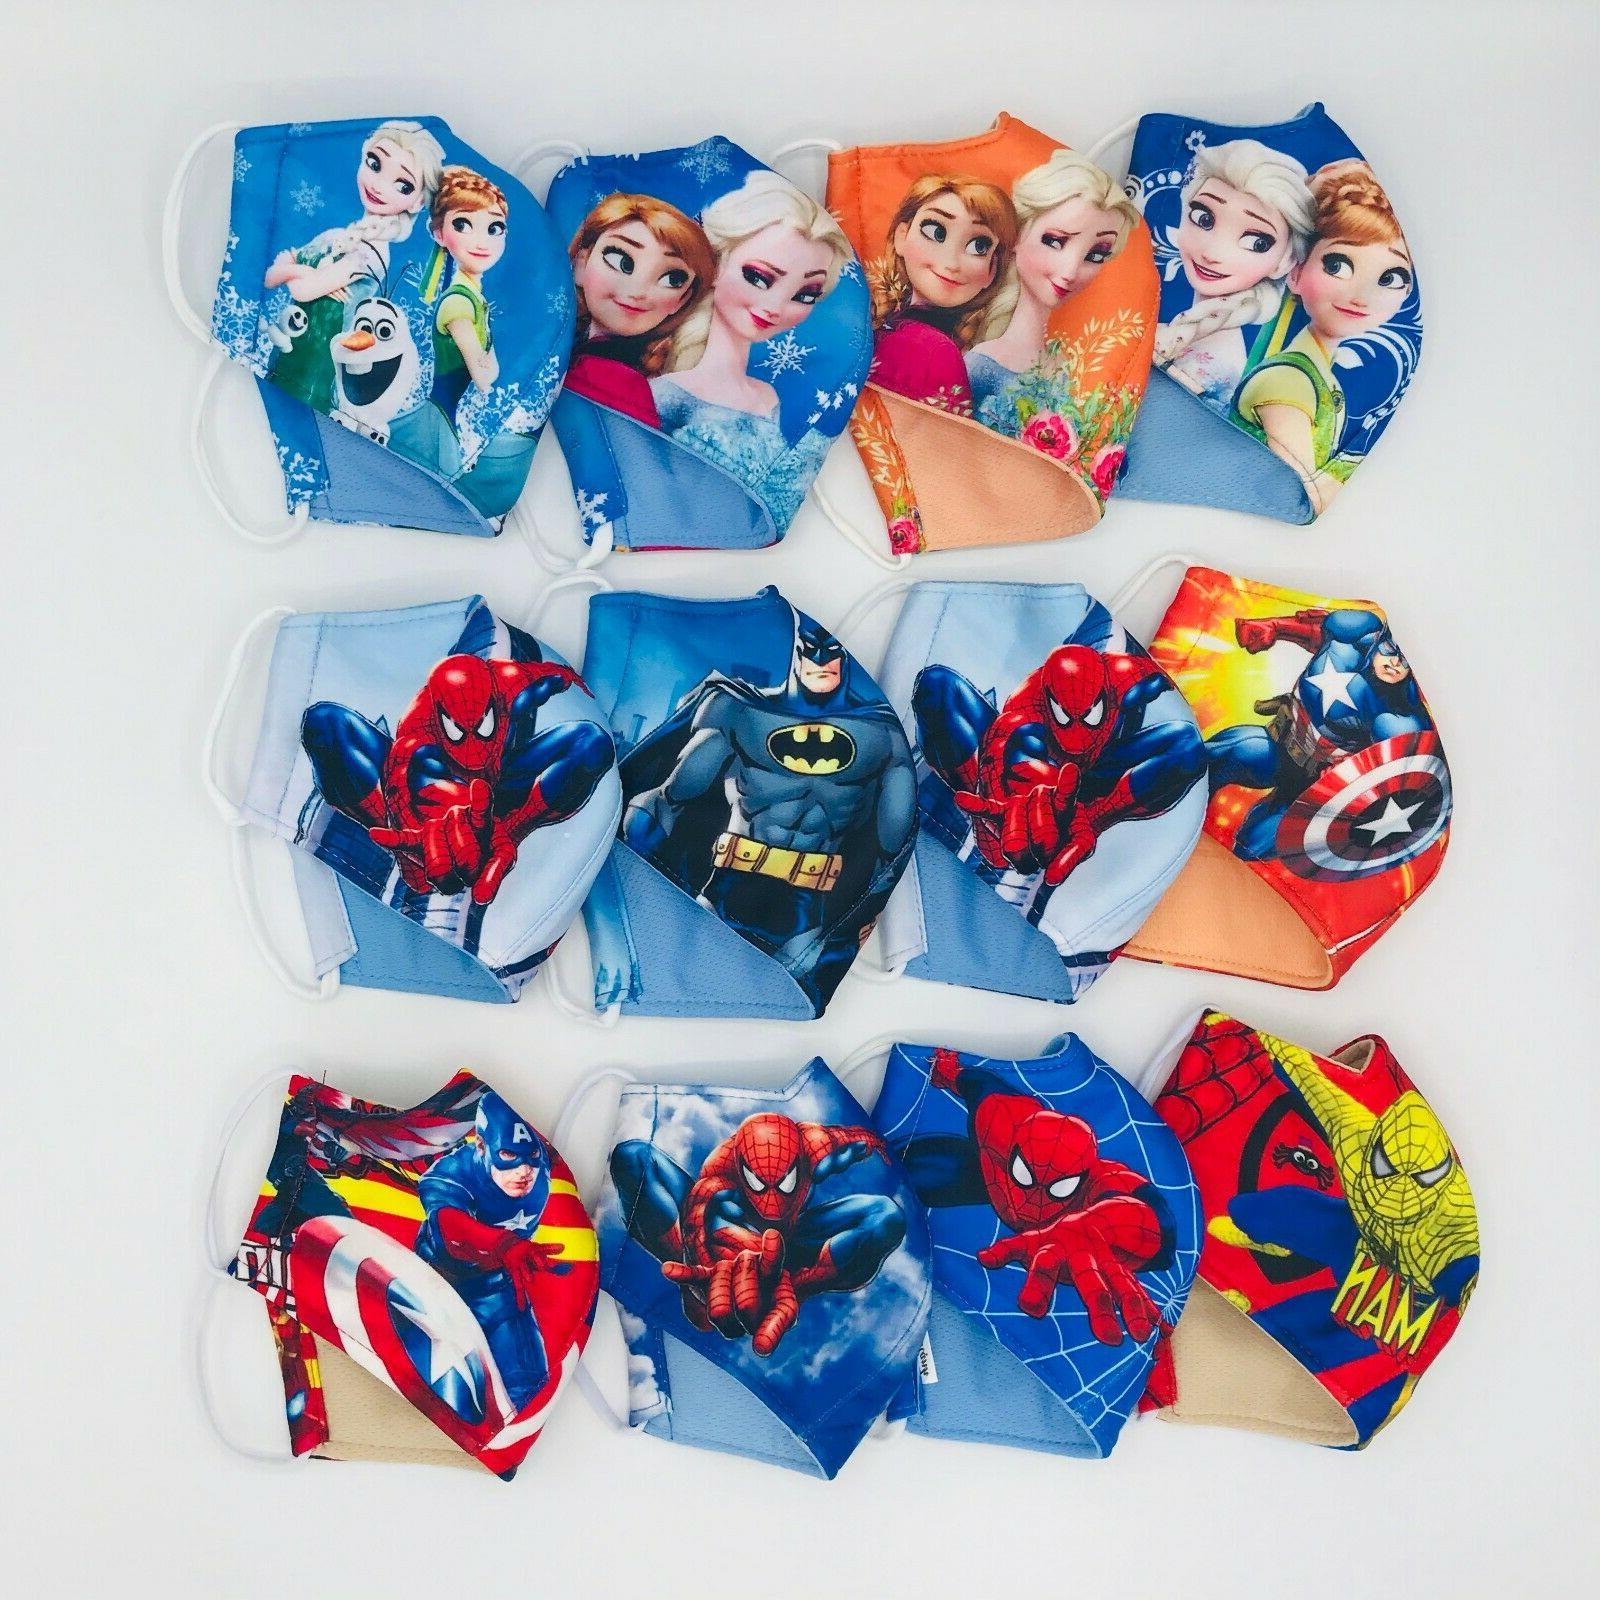 2/3 PACK Mask HERO/PRINCESS 3-Fly Washable AGES 6-10